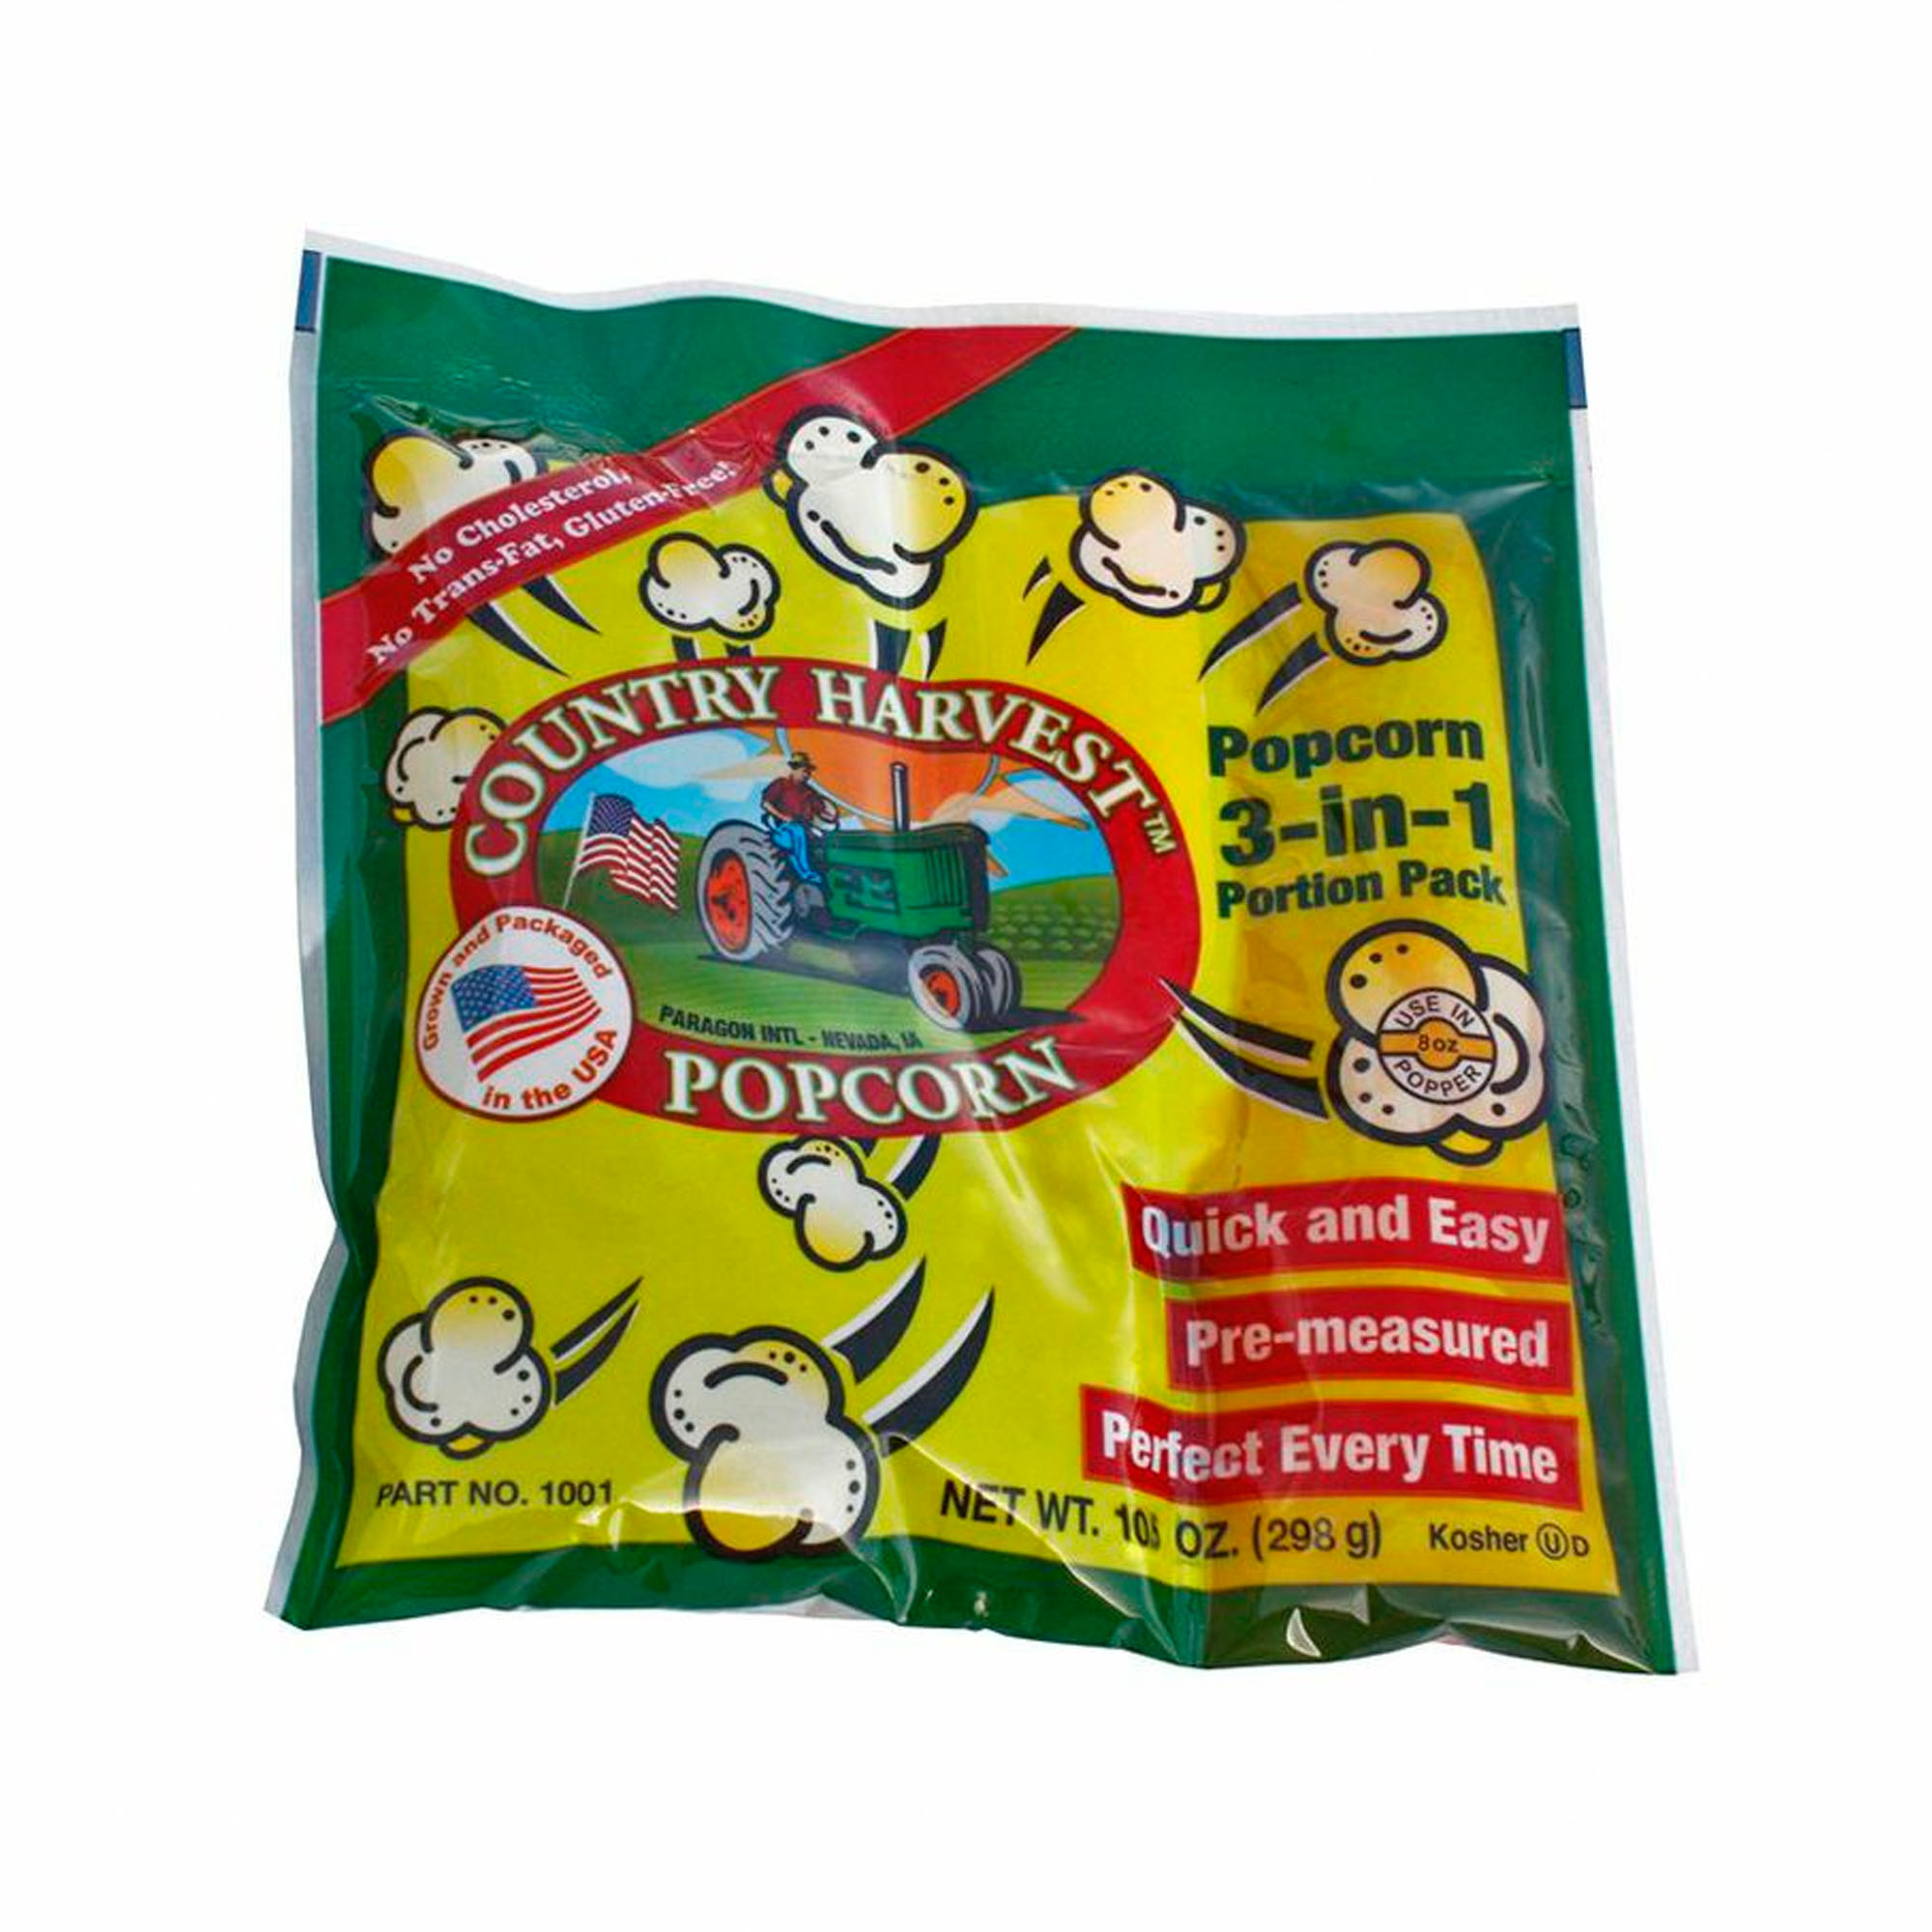 Paragon Country Harvest 8 oz. Tri-Pack Portion